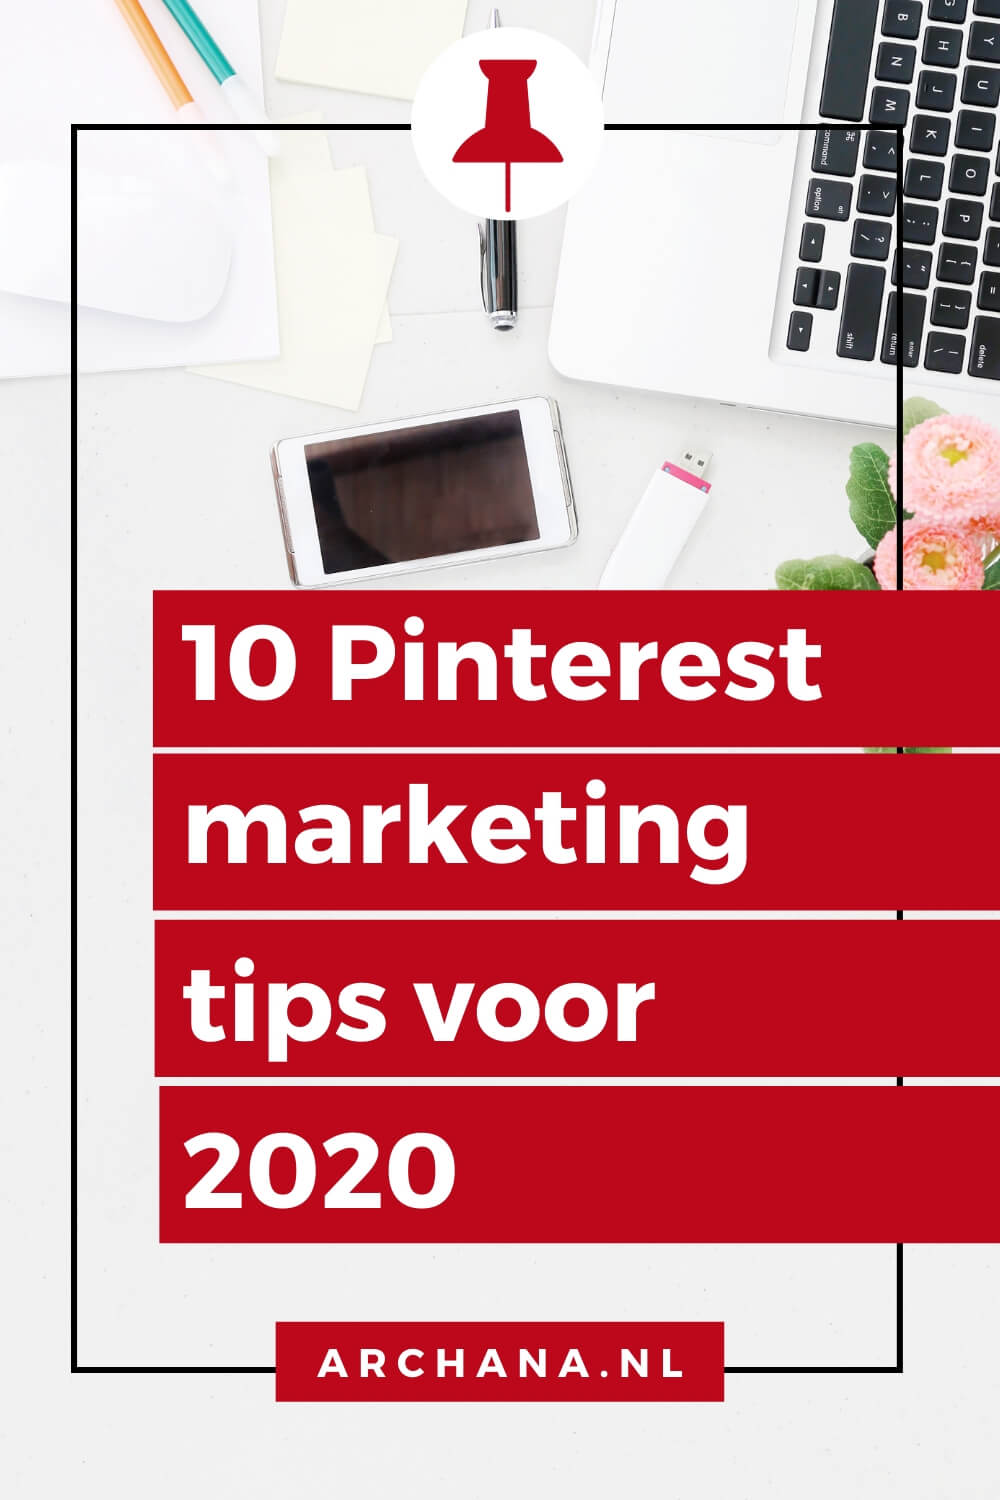 10 Pinterest marketing fouten die je in 2020 niet hoeft te maken - ARCHANA.NL | pinterest marketing tips | pinterest marketing 2020 #pinterestmarketing #pinteresttips #succesmetpinterest